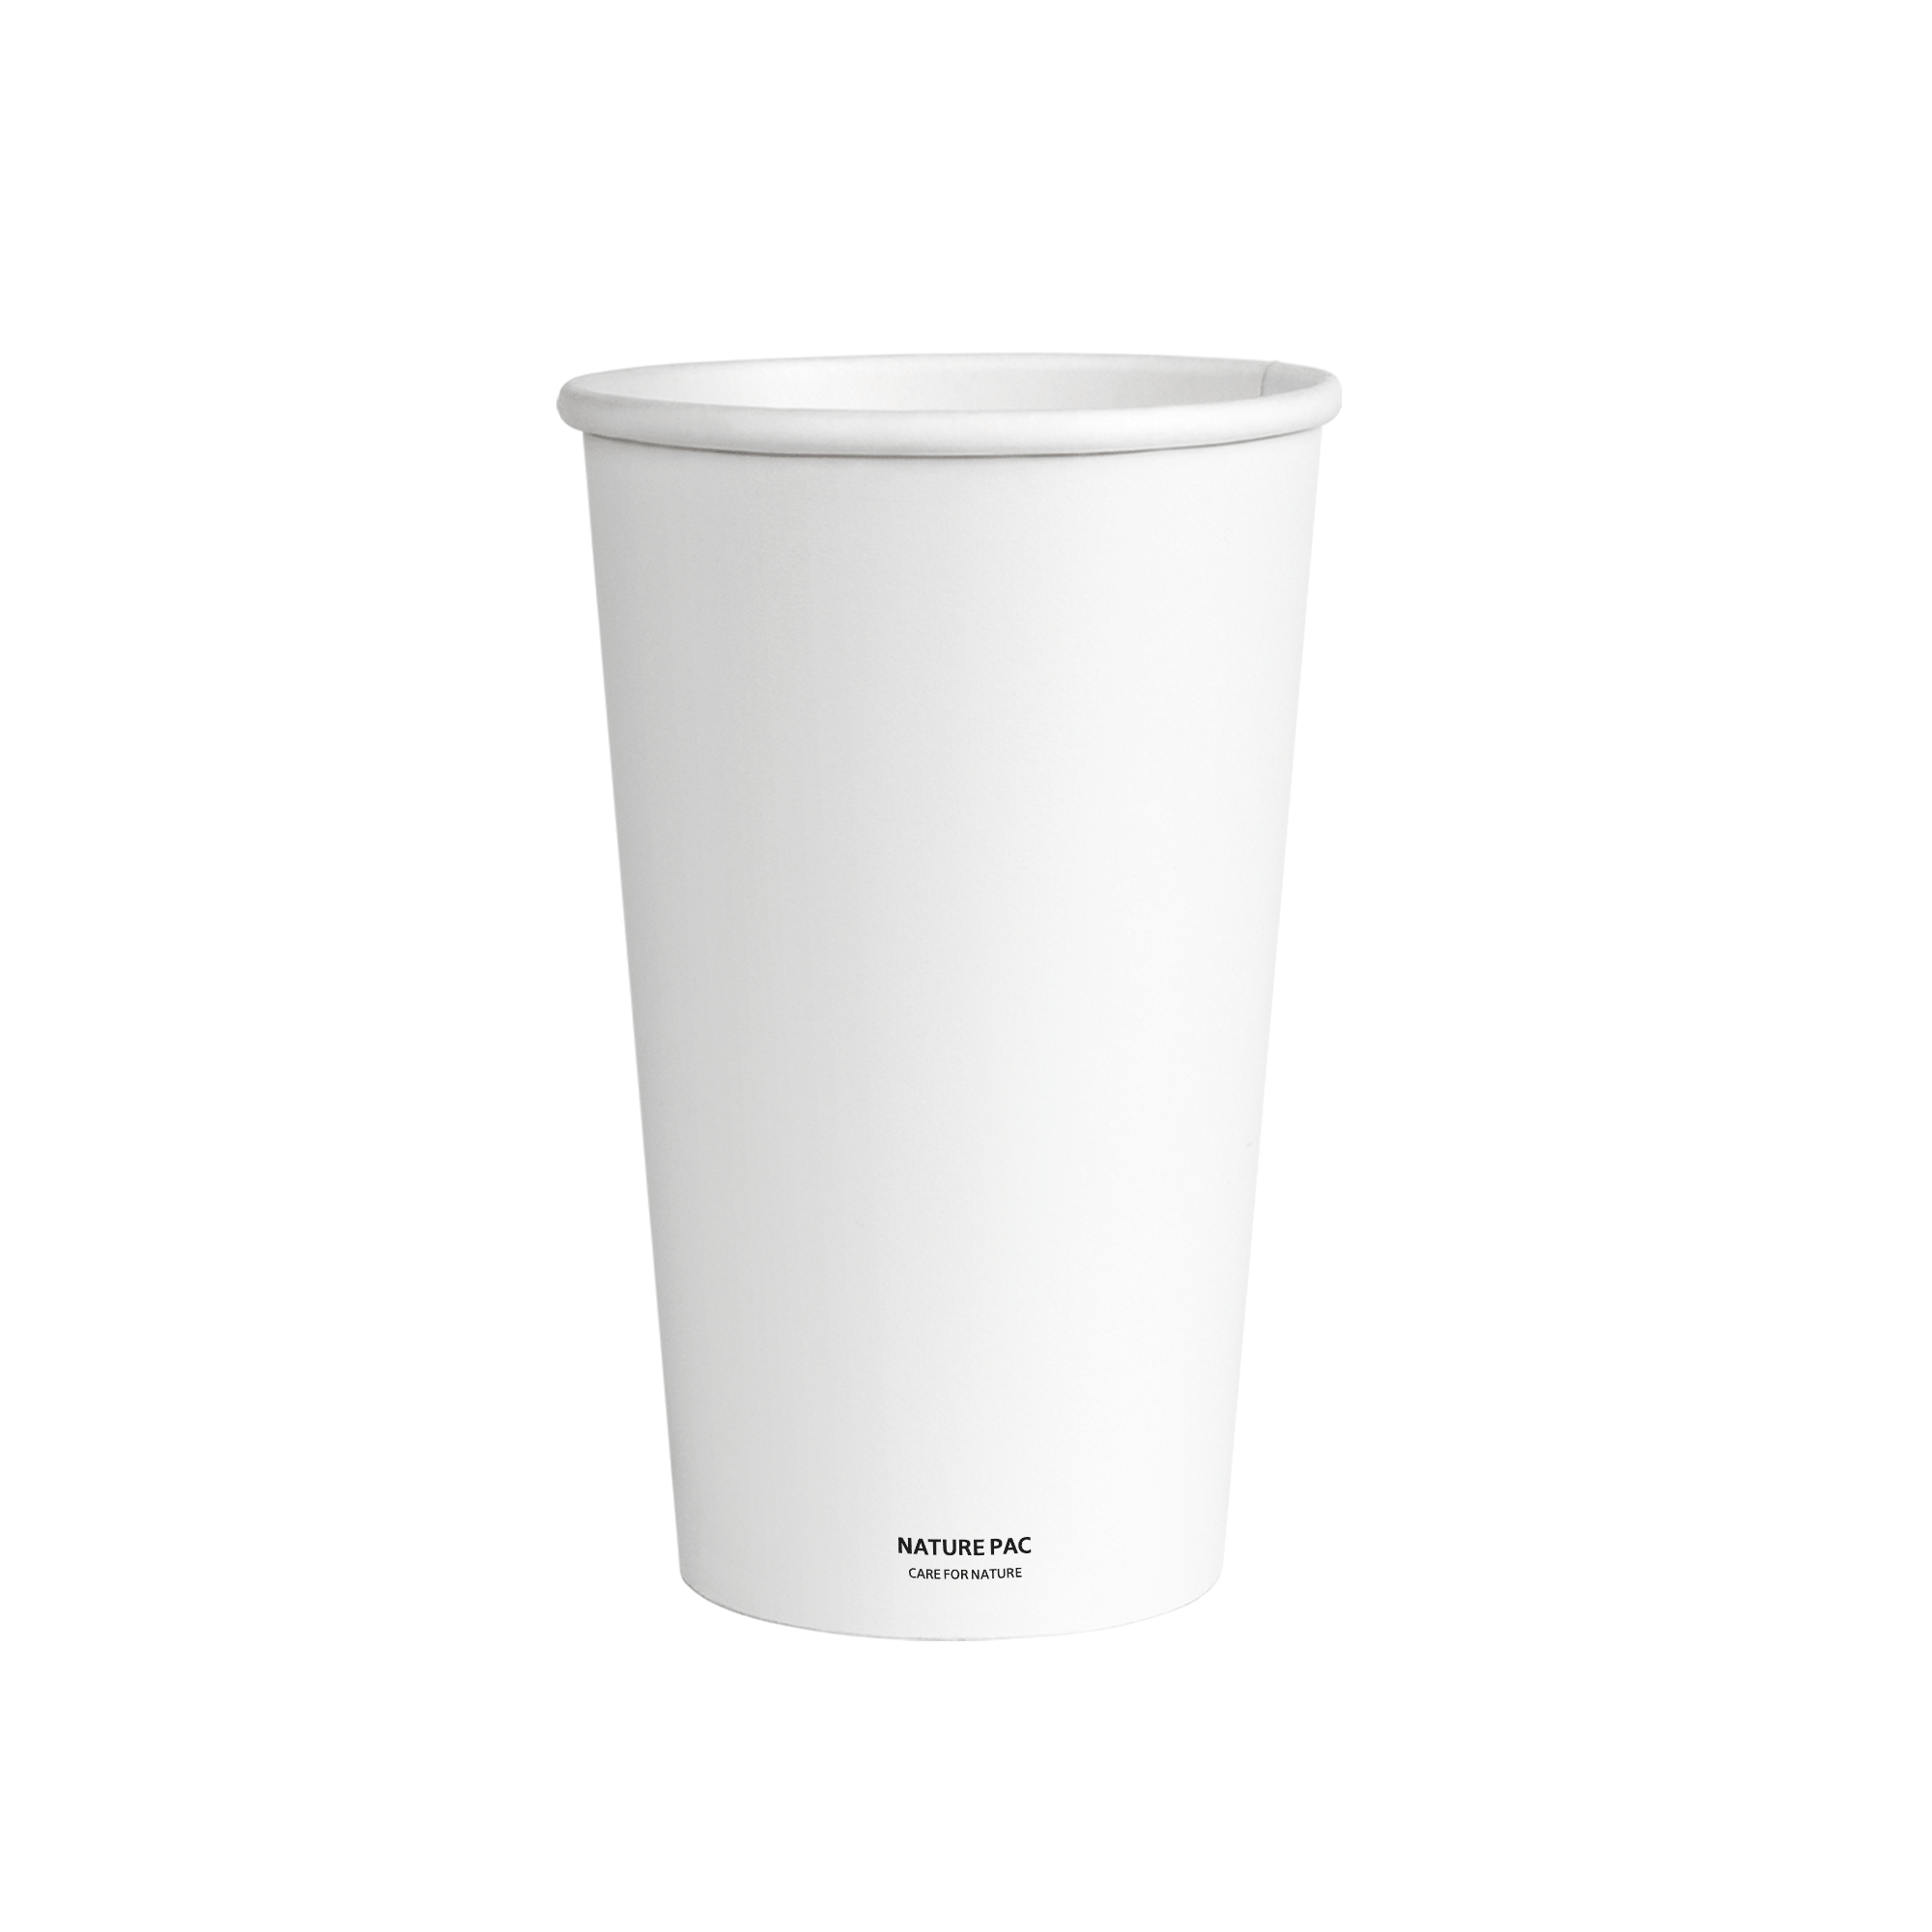 16oz PLA Cups (90mm) - White - Nature Pac